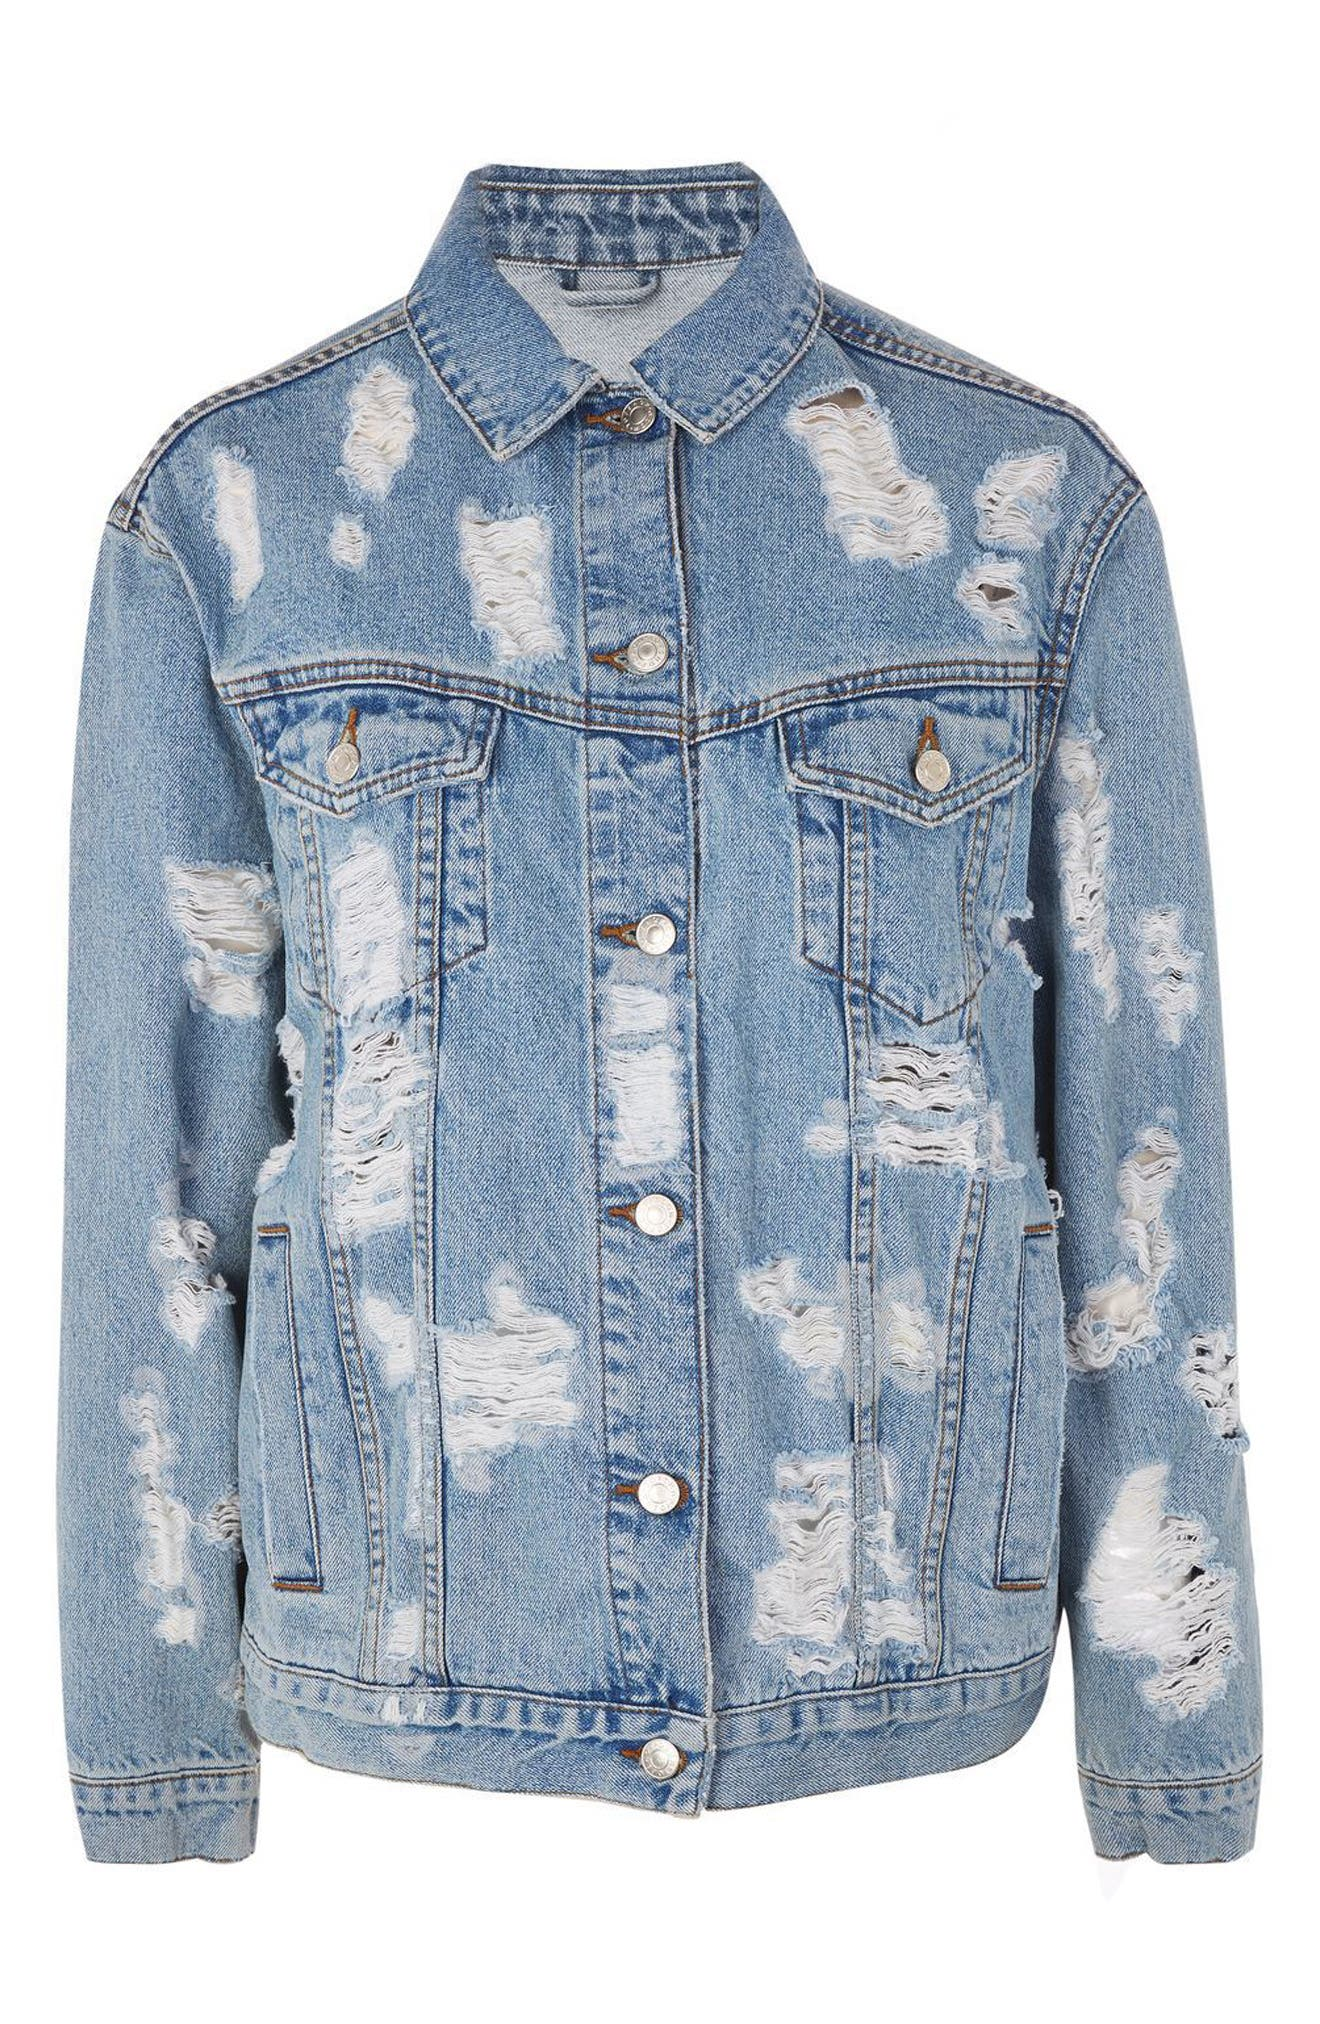 Ripped Denim Jacket,                             Alternate thumbnail 4, color,                             400